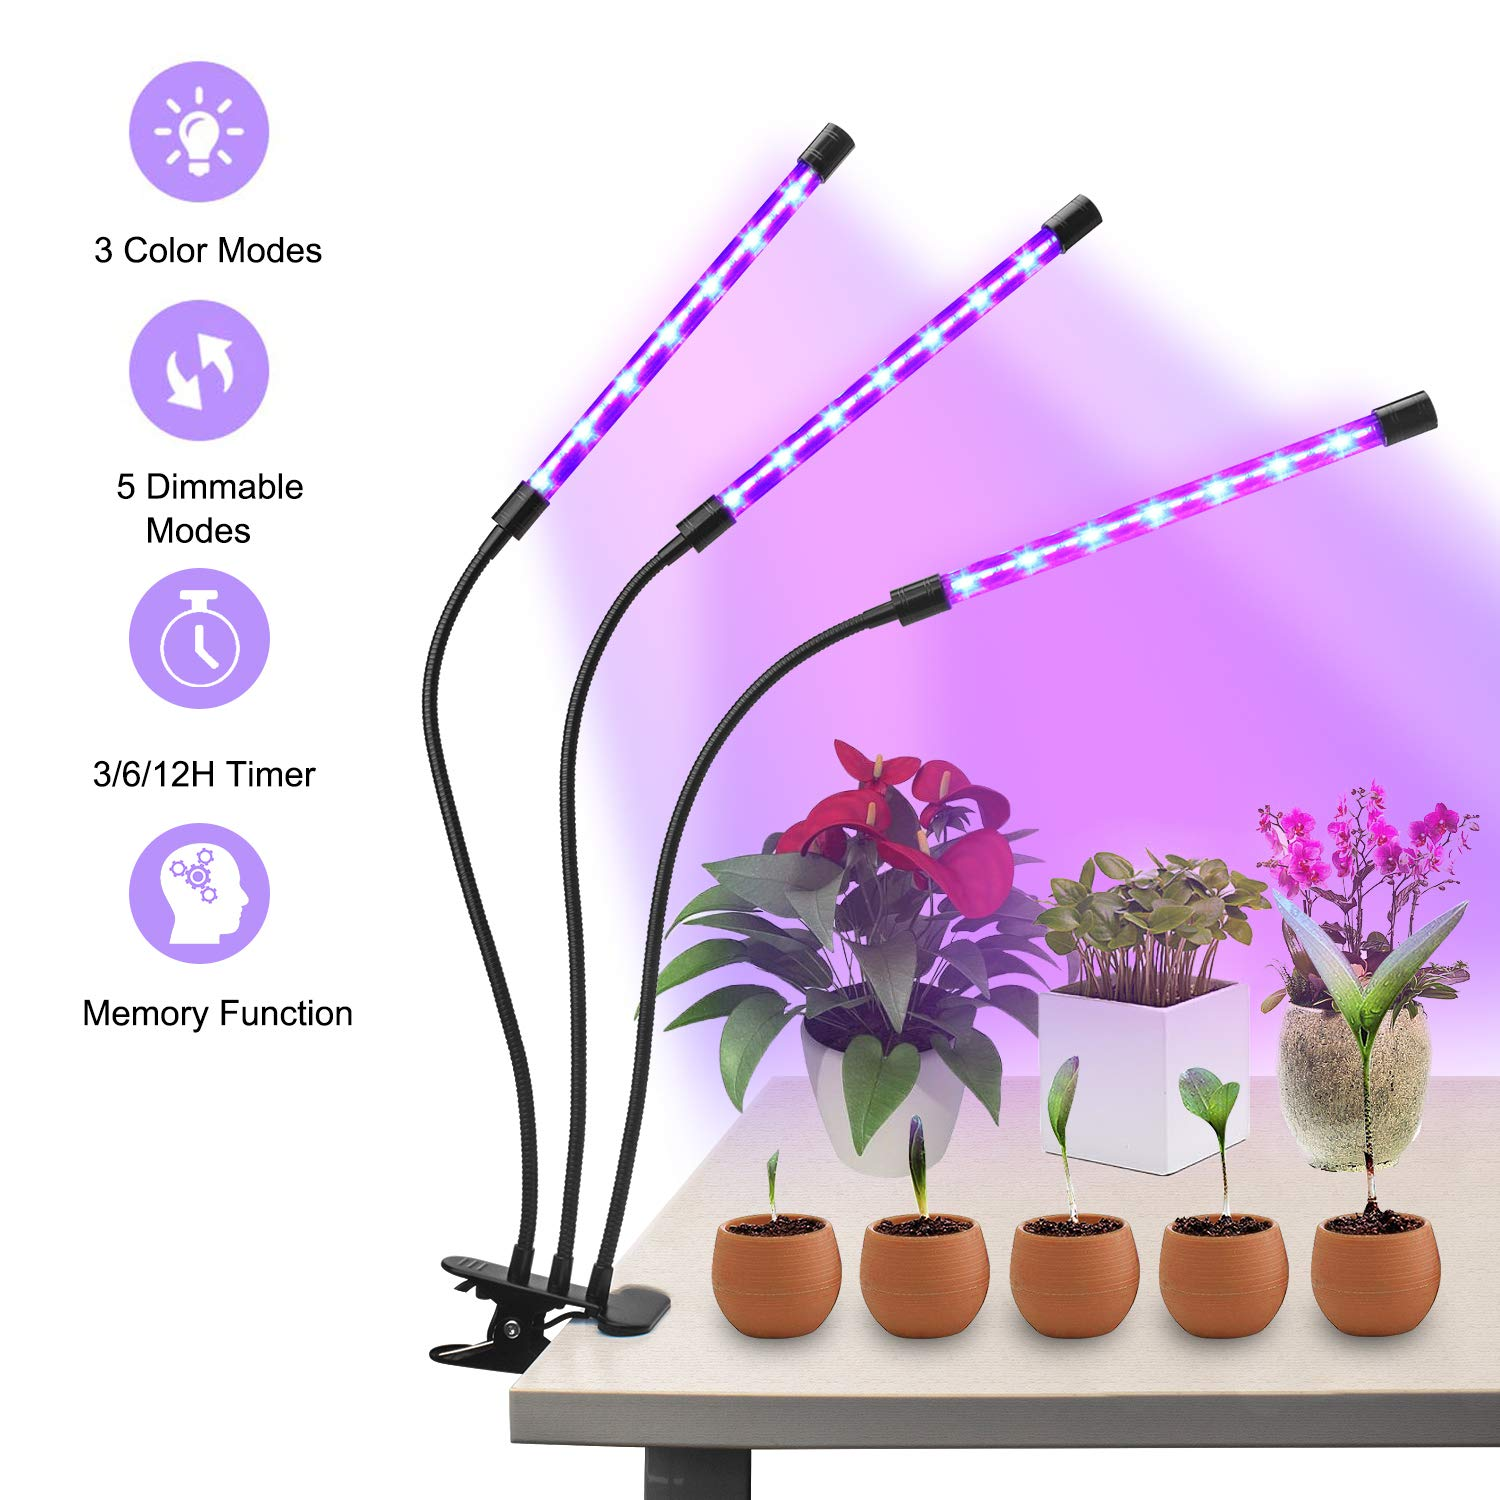 Beinhome 30W LED Grow Lamp Bulbs Plant Lights Full Spectrum, Auto ON Off with 3 6 12H Timer 5 Dimmable Levels Clip-On Desk Grow Lamp for Indoor Plants